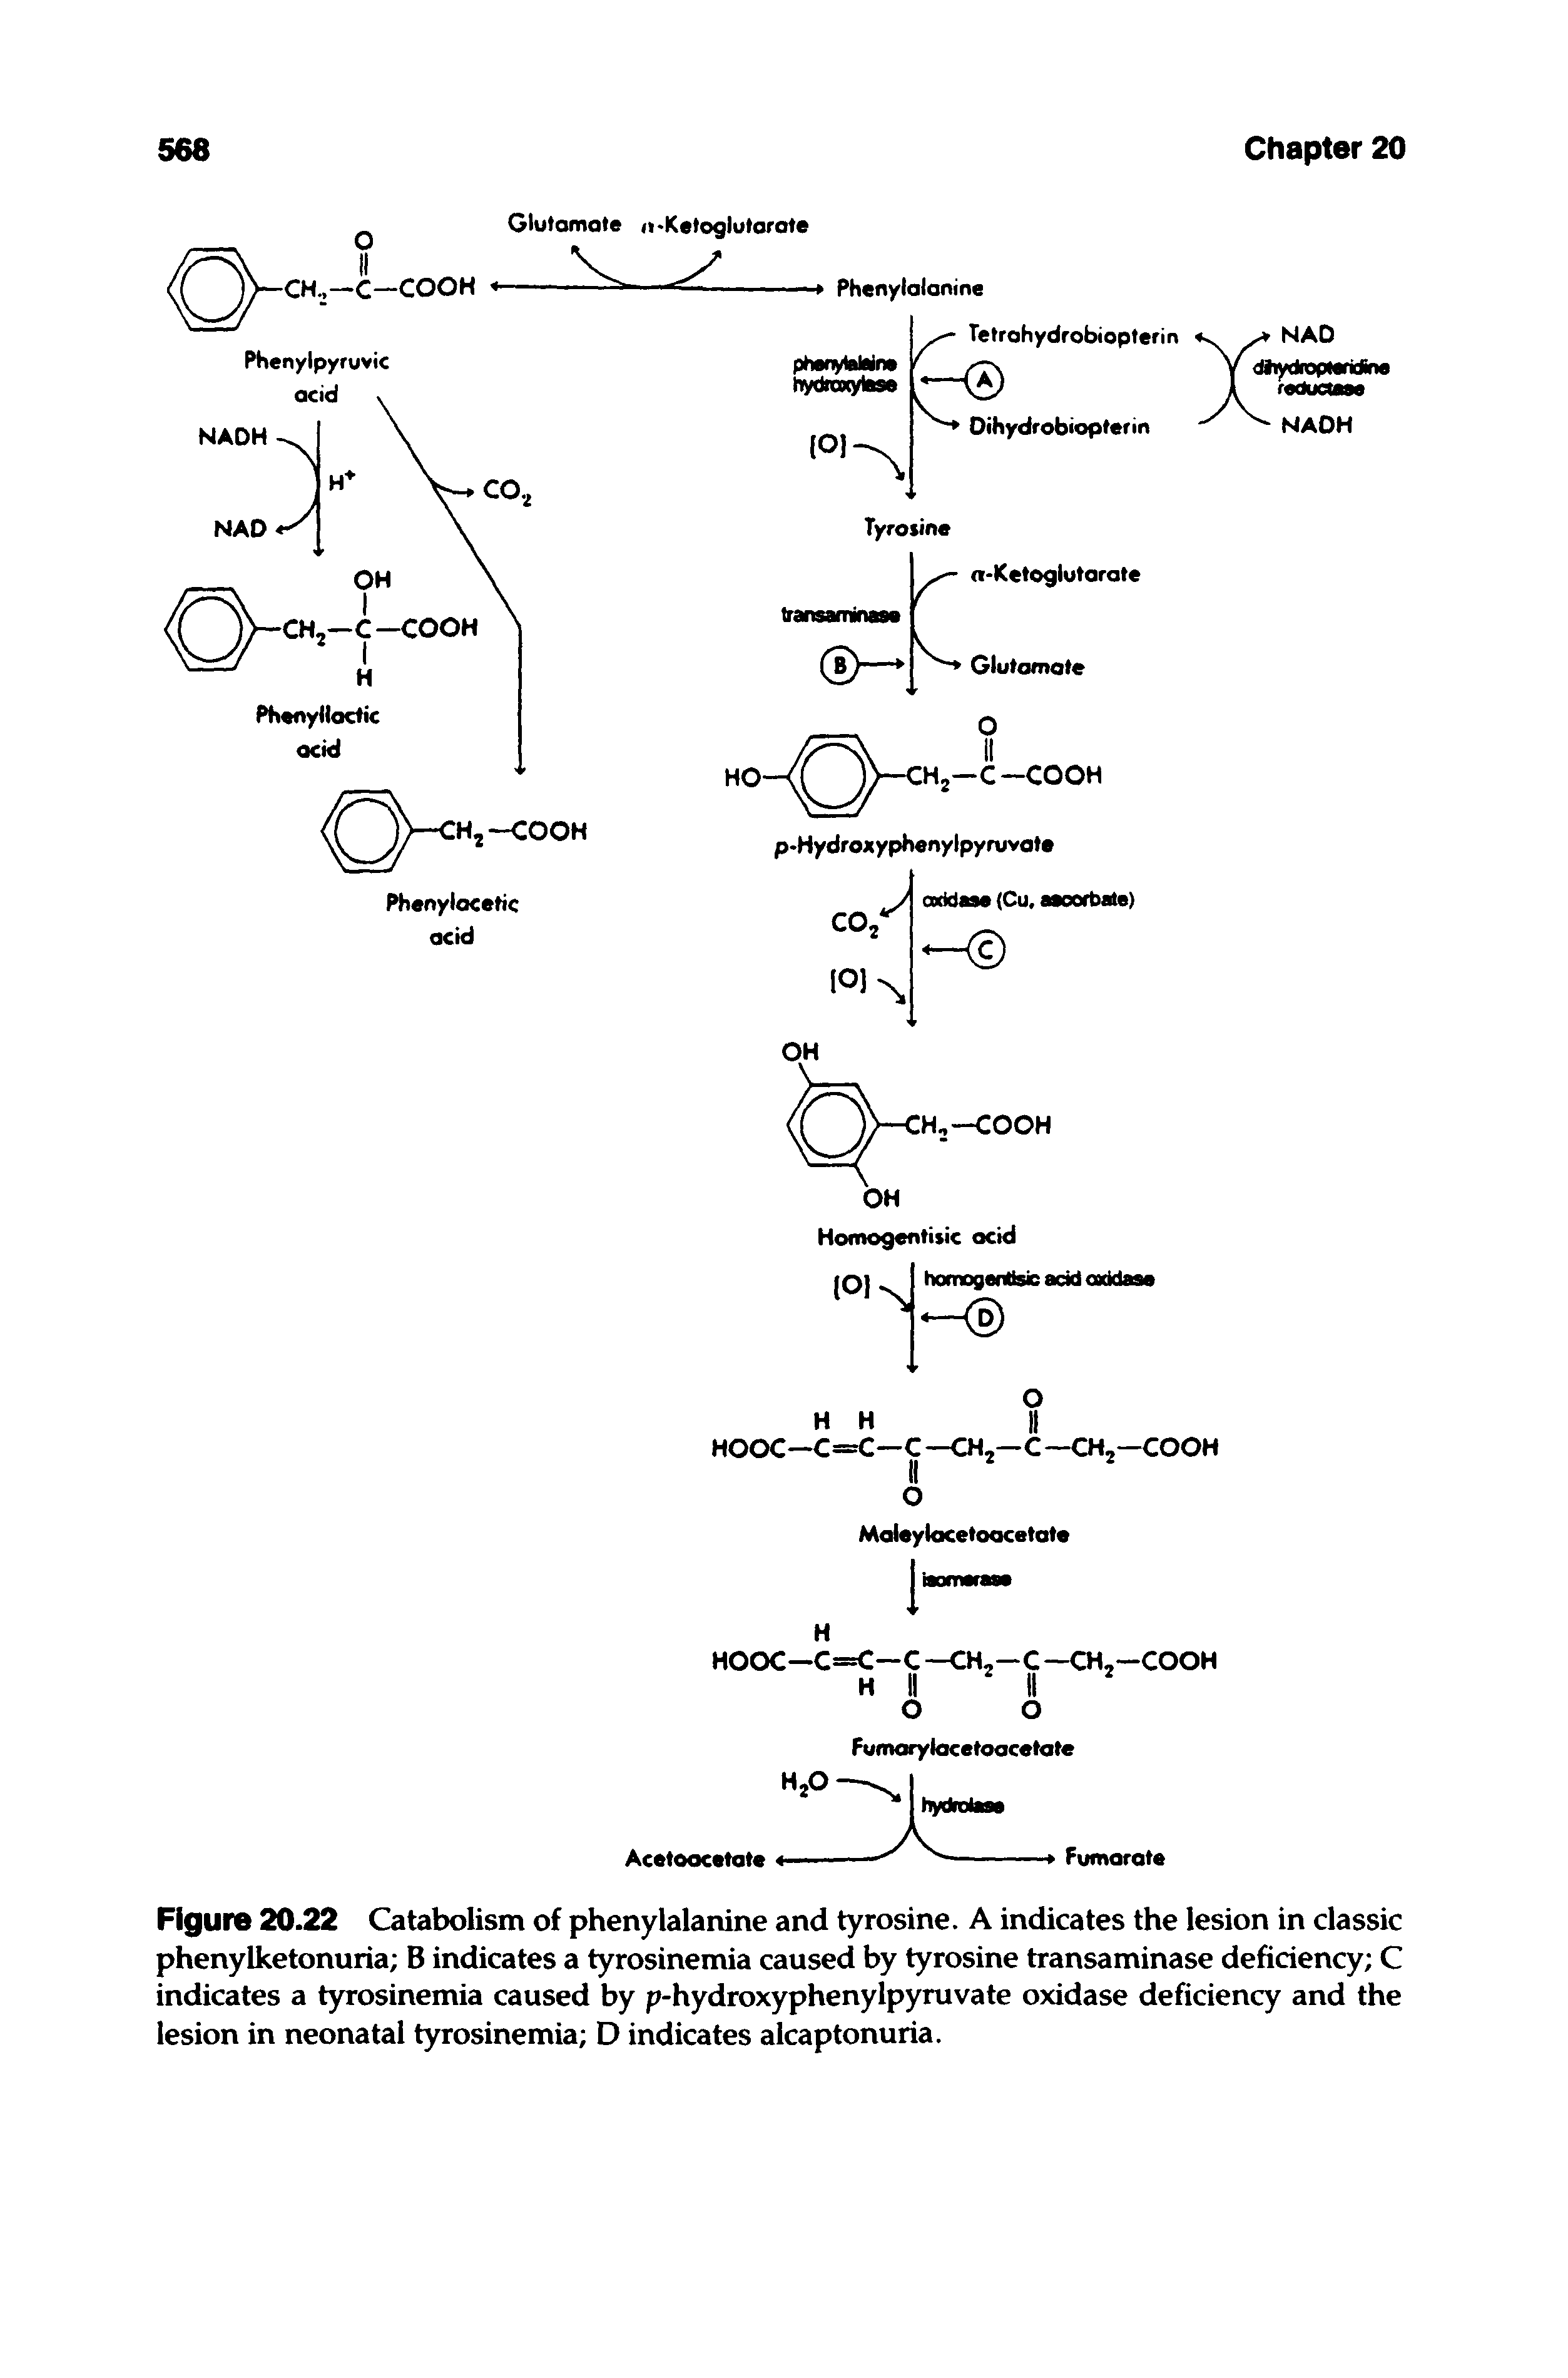 "Figure 20.22 Catabolism of phenylalanine and tyrosine. A indicates the lesion in <a href=""/info/classic_phenylketonuria"">classic phenylketonuria</a> B indicates a tyrosinemia caused by <a href=""/info/transaminases_for_l_tyrosine"">tyrosine transaminase</a> deficiency C indicates a tyrosinemia caused by p-<a href=""/info/p_hydroxyphenylpyruvate_oxidase"">hydroxyphenylpyruvate oxidase</a> deficiency and the lesion in <a href=""/info/neonatal_tyrosinemia"">neonatal tyrosinemia</a> D indicates alcaptonuria."